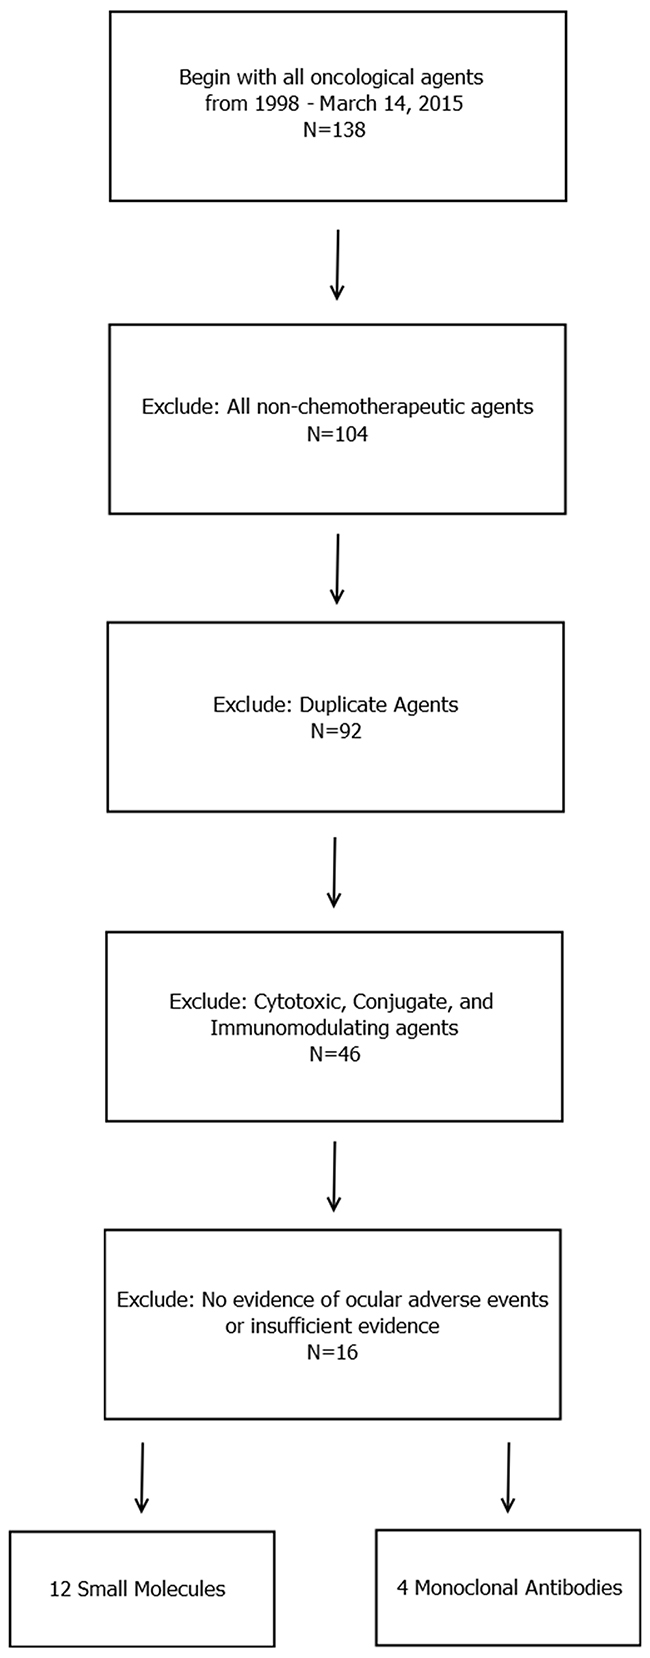 Diagram for the inclusion of anticancer agents that were analyzed.